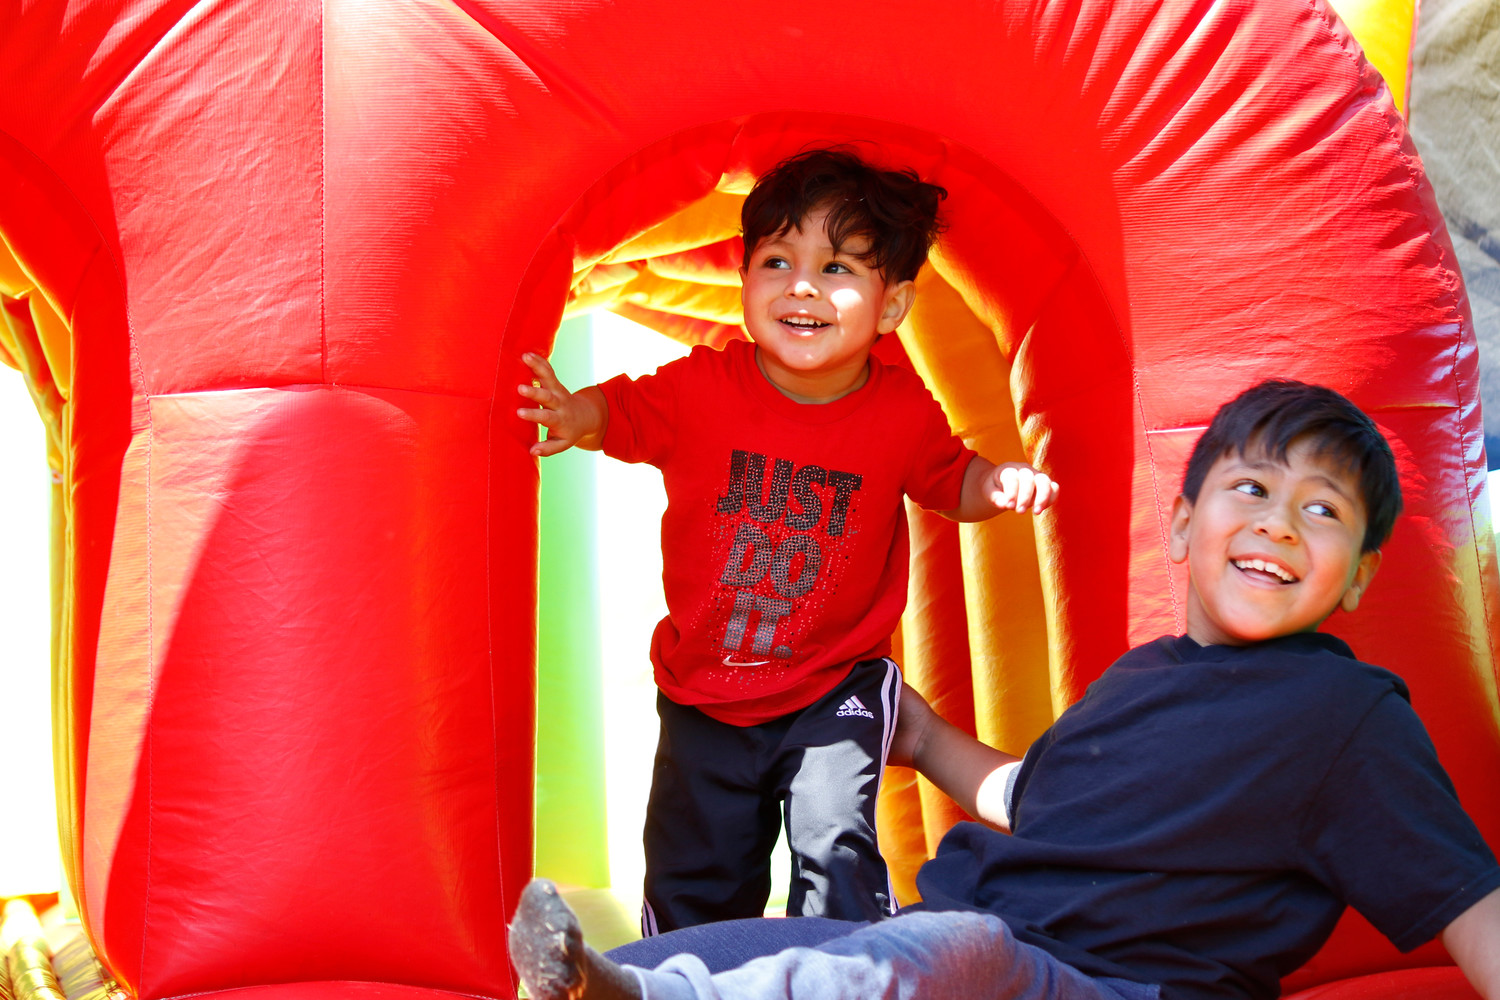 Carlos Mendoza had a lot of fun inside the bouncy obstacle course at East Meadow's 27th annual Pride Day.